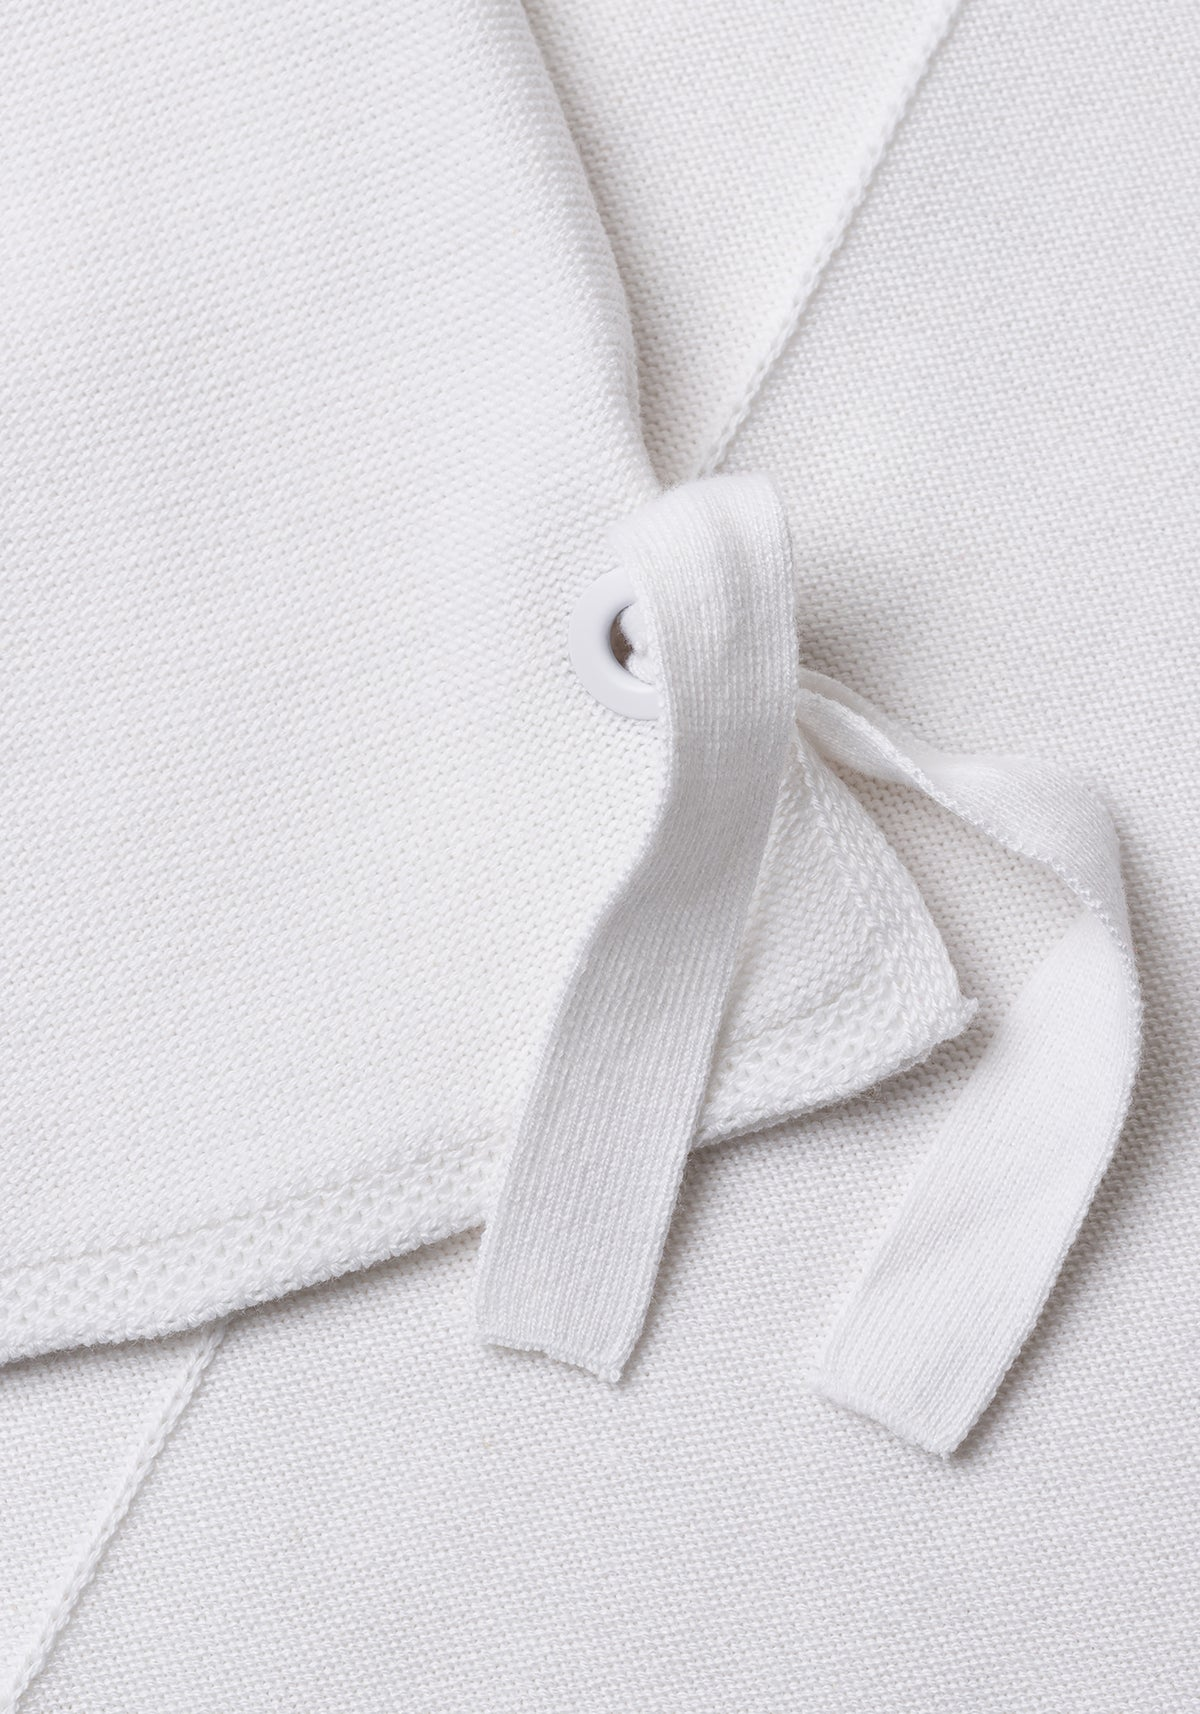 3/4 Sleeve Pullover with Cuff Tie Detail